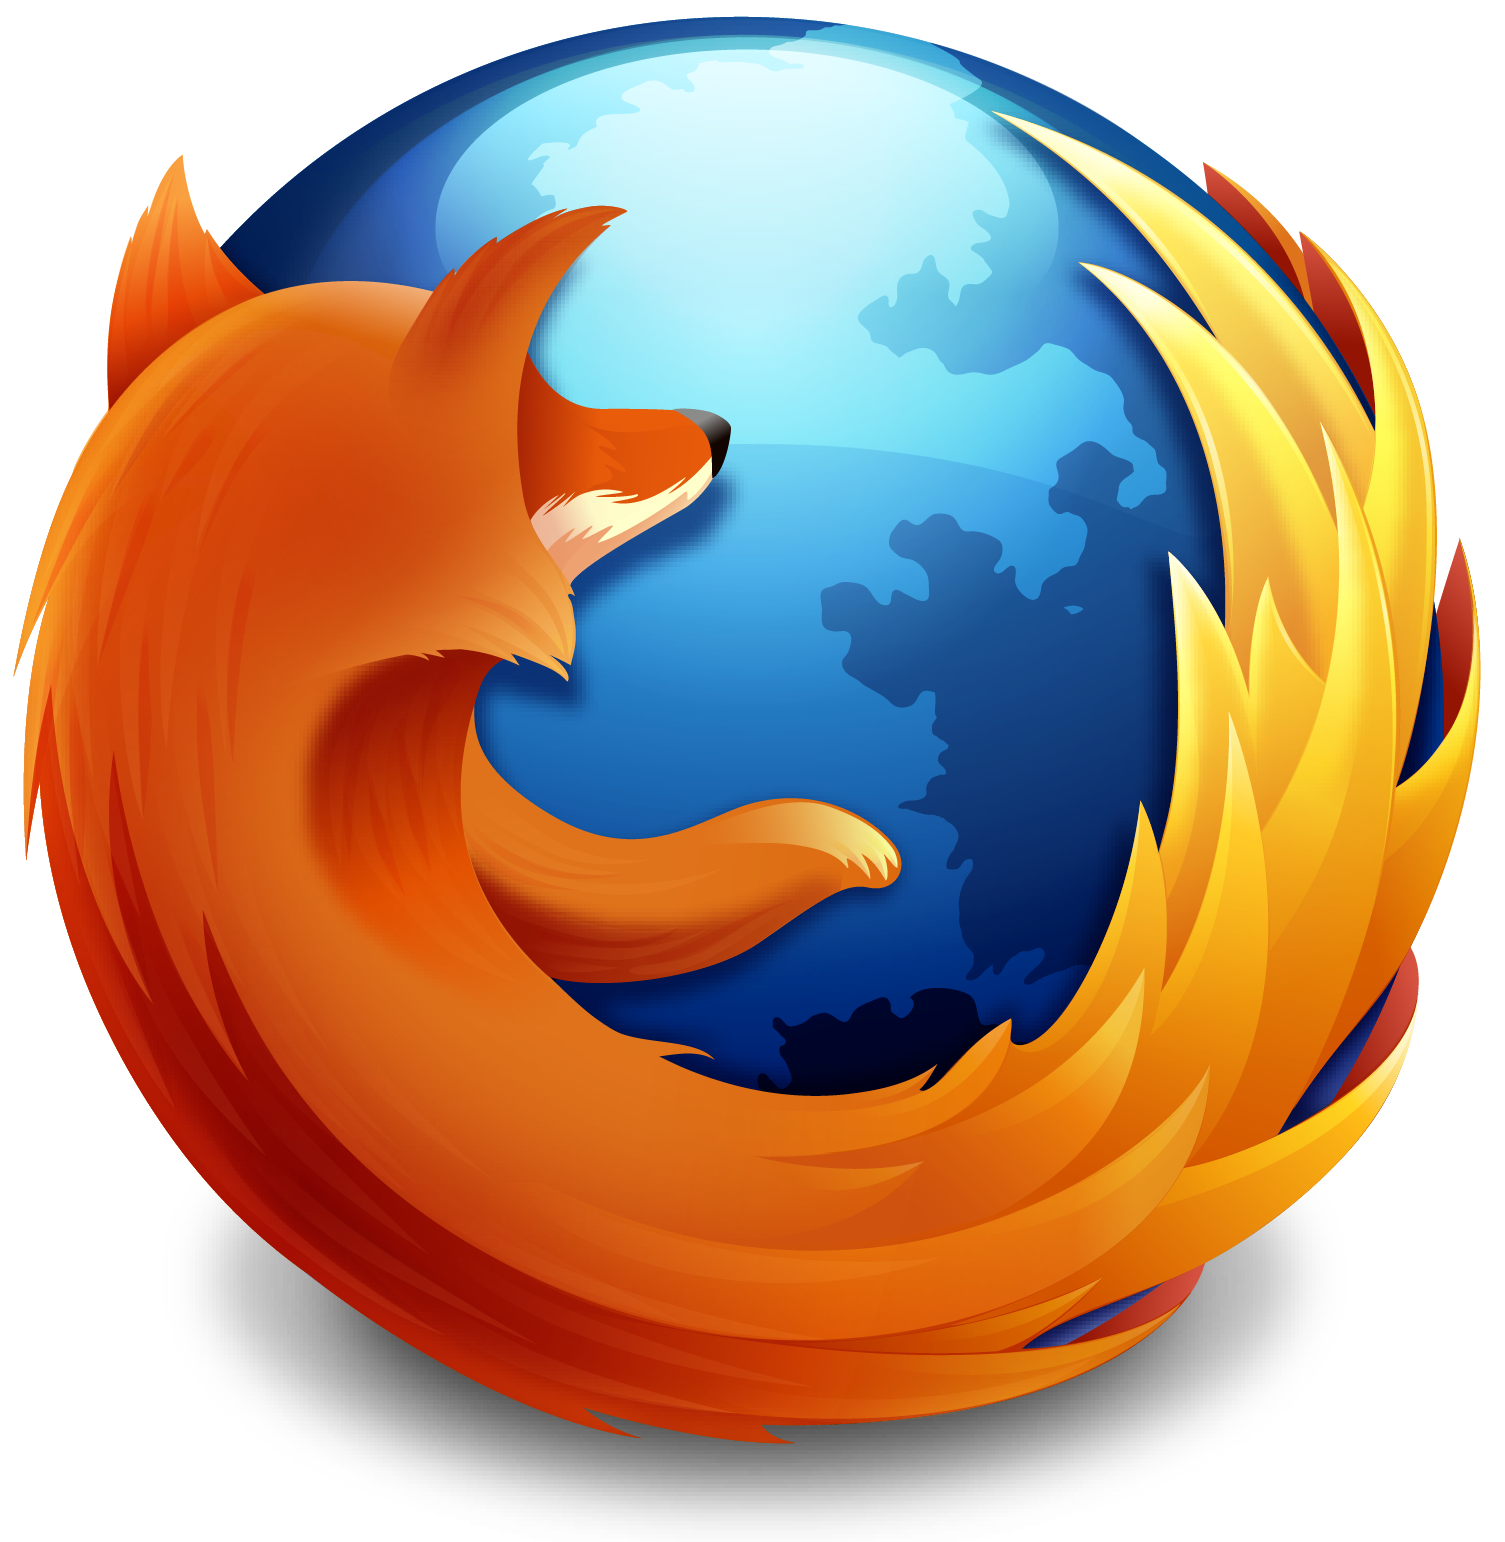 Download Firefox Beta in your language